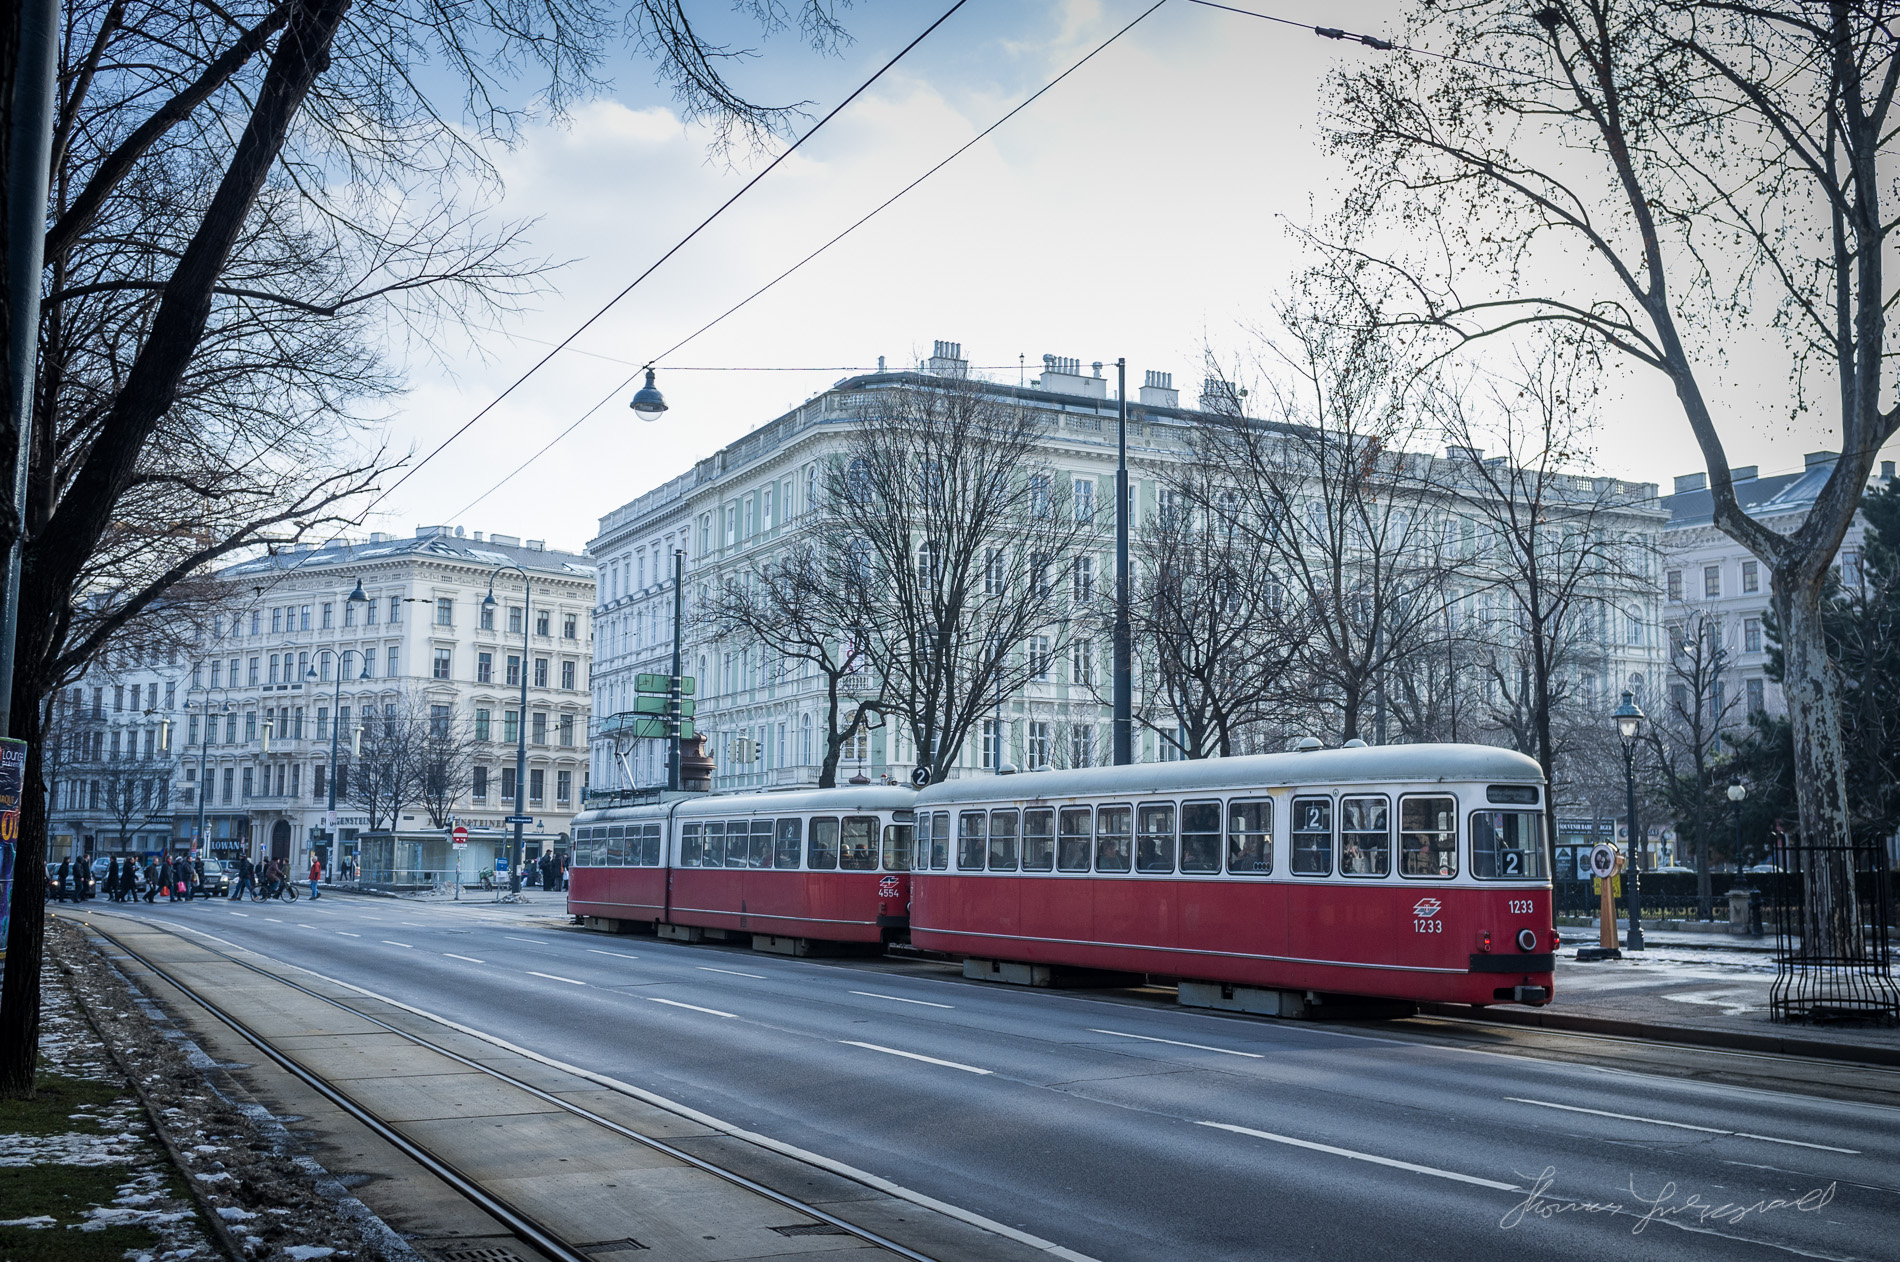 A Tram in the streets outside the museum quarter Vienna, Fujifilm X100